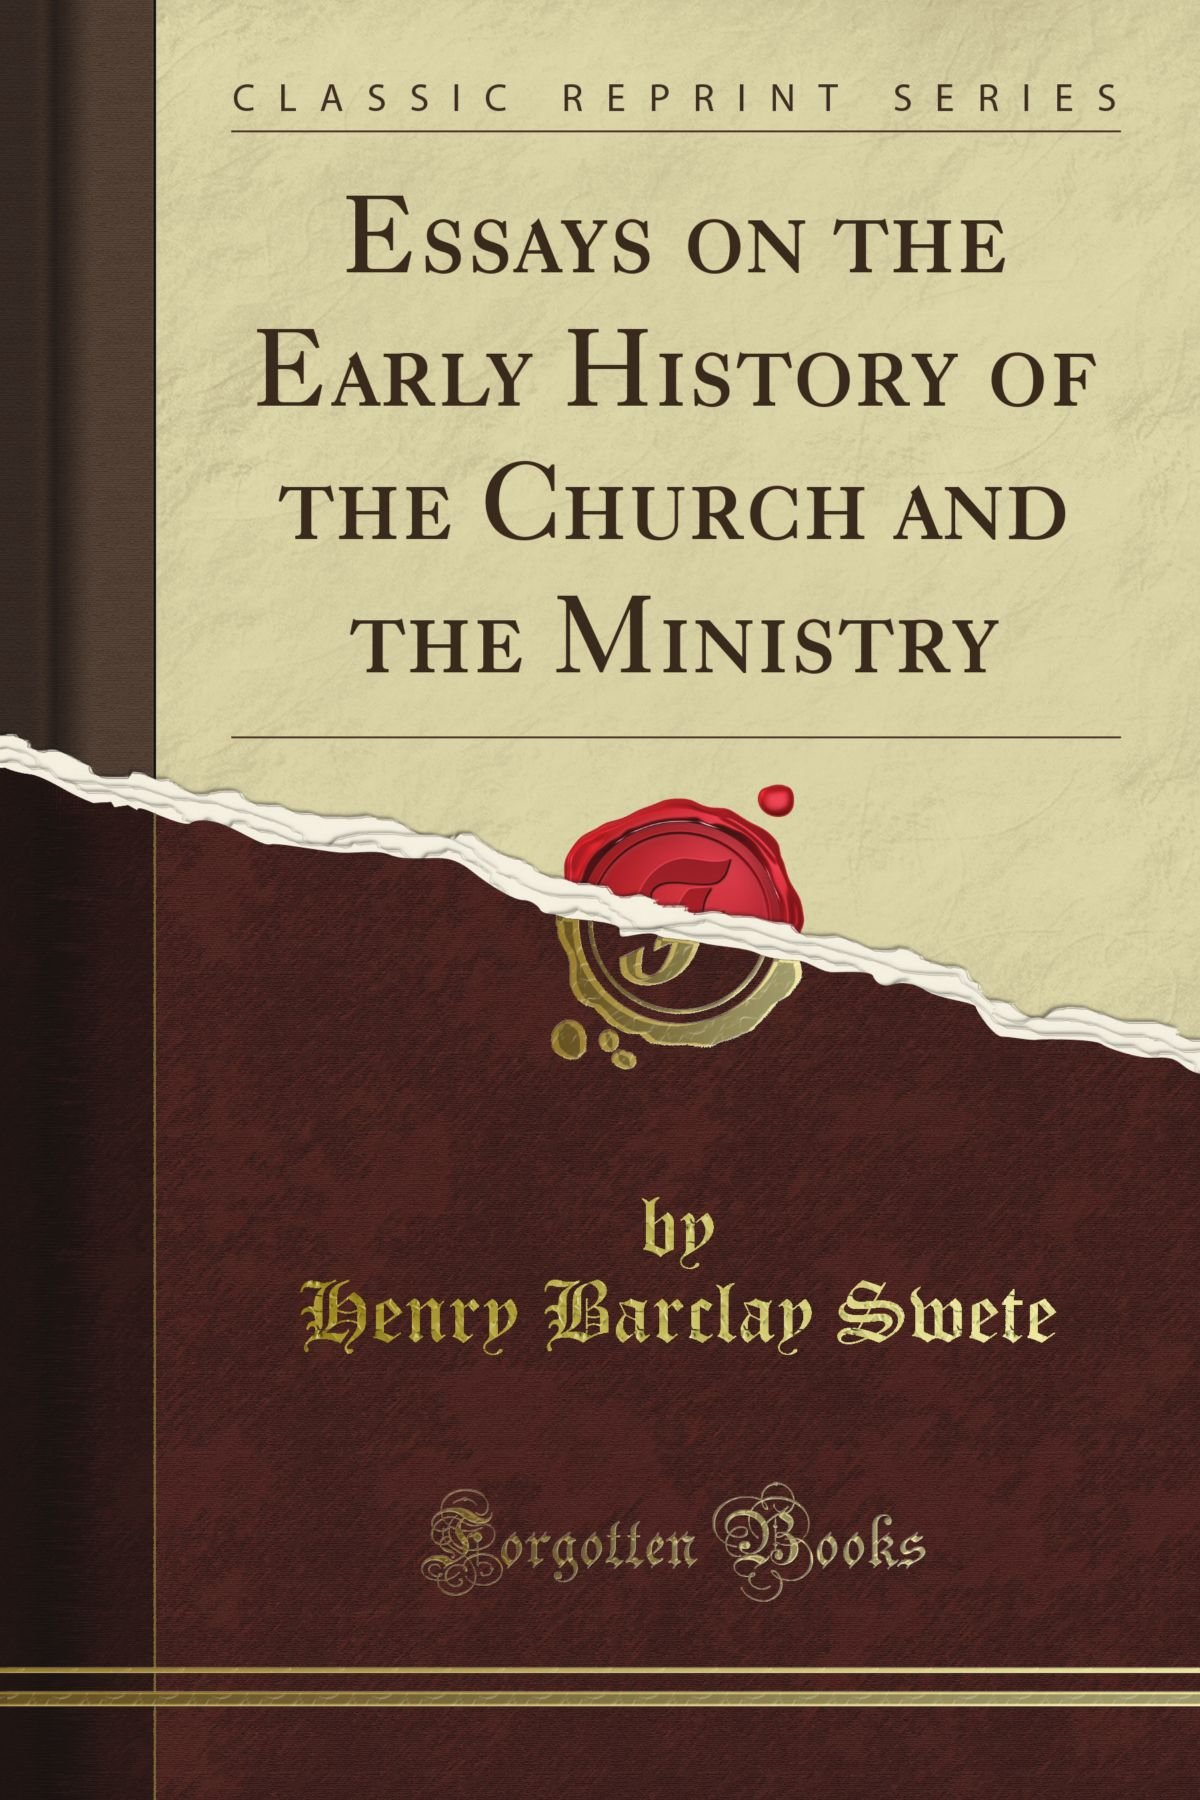 Essays on the Early History of the Church and the Ministry (Classic Reprint) ebook